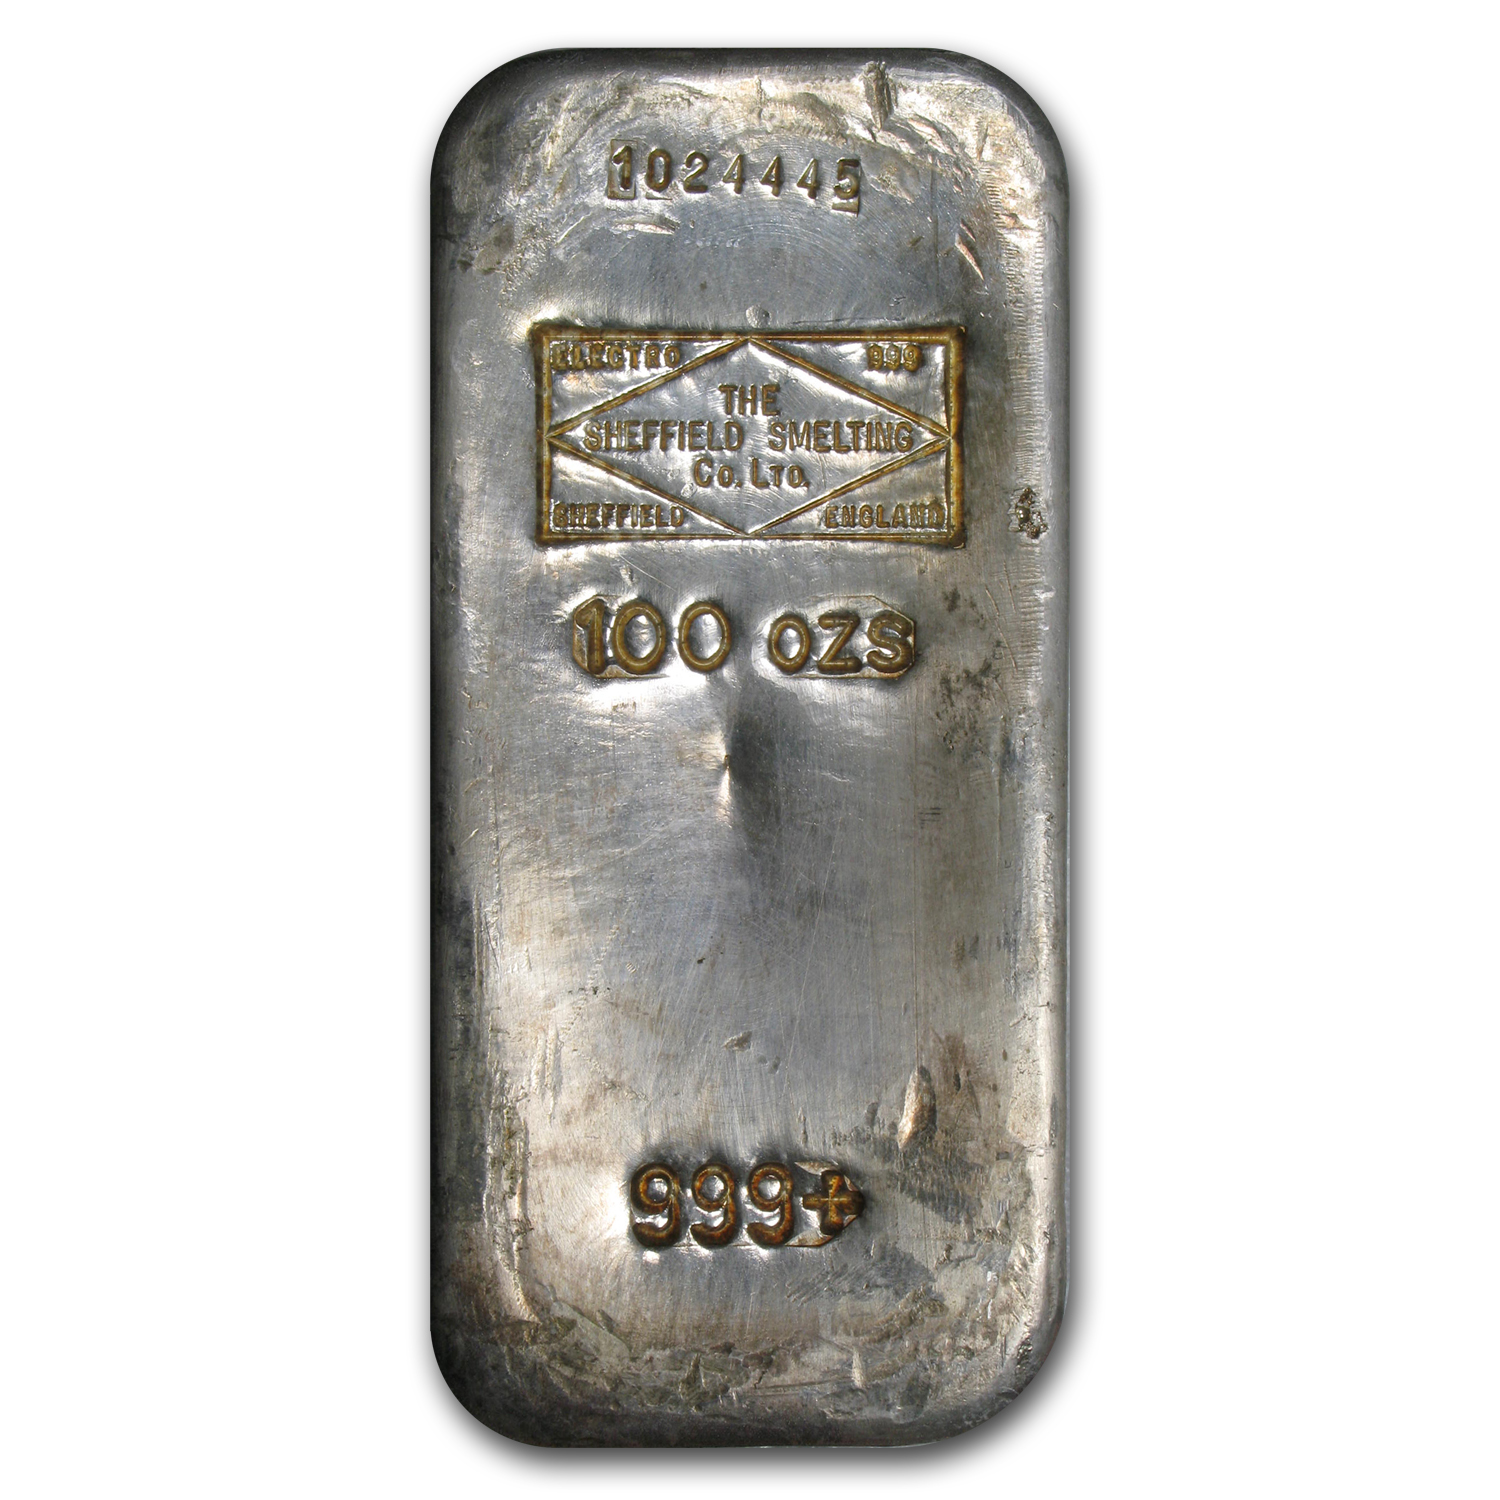 100 oz Silver Bars - Sheffield Smelting Co. Ltd